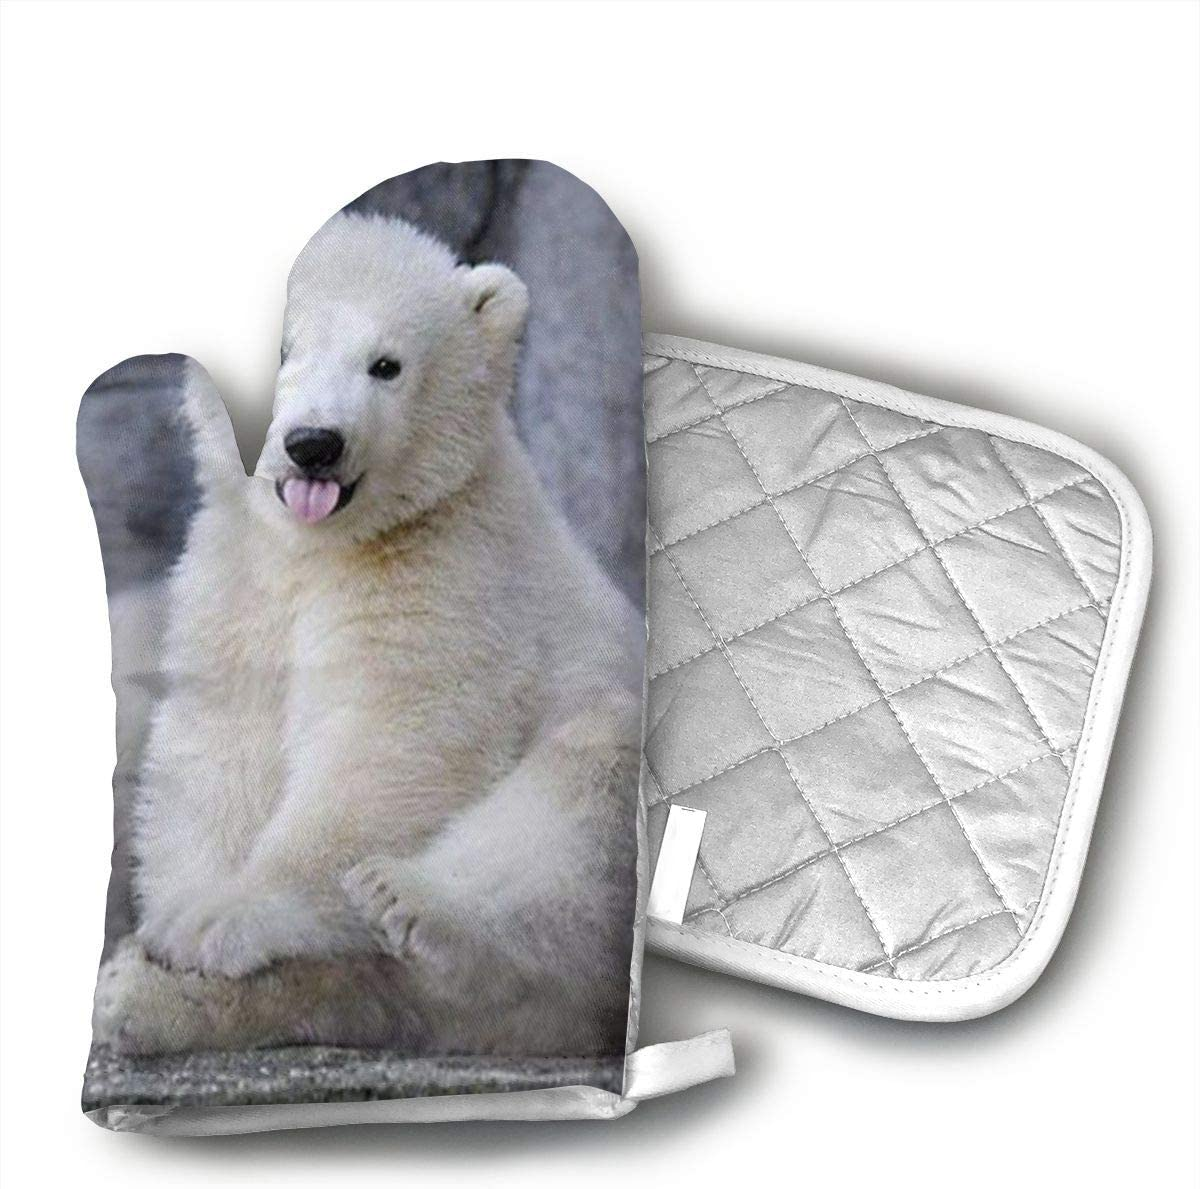 Baby Polar Bears Oven Mitts And BBQ Gloves Pot Holders, Heat Resistant Mitts For Finger Hand Wrist Protection With Inner Lining, Kitchen Gloves For Grilling Machine Baking Grilling With Non-Slip